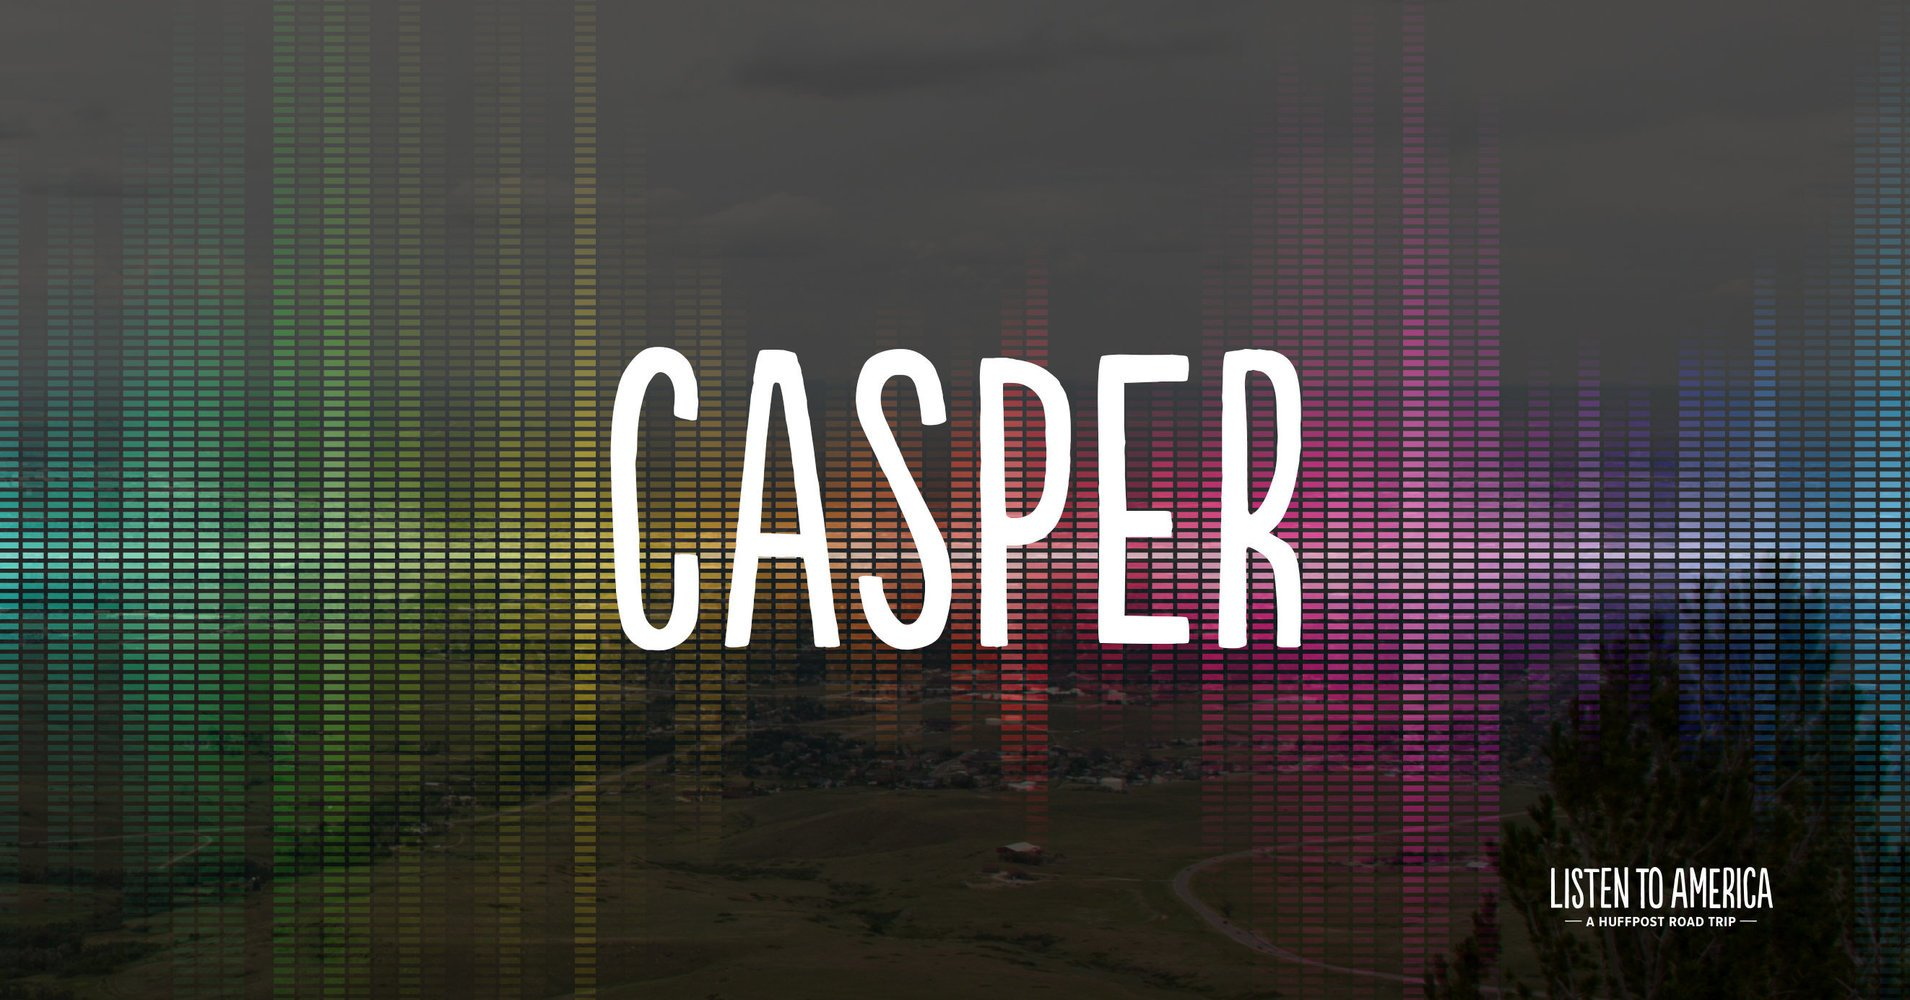 The ultimate Casper, Wyoming, road trip playlist #ListenToAmerica https://t.co/qhsxC2dVrj https://t.co/GphgGz7I2C